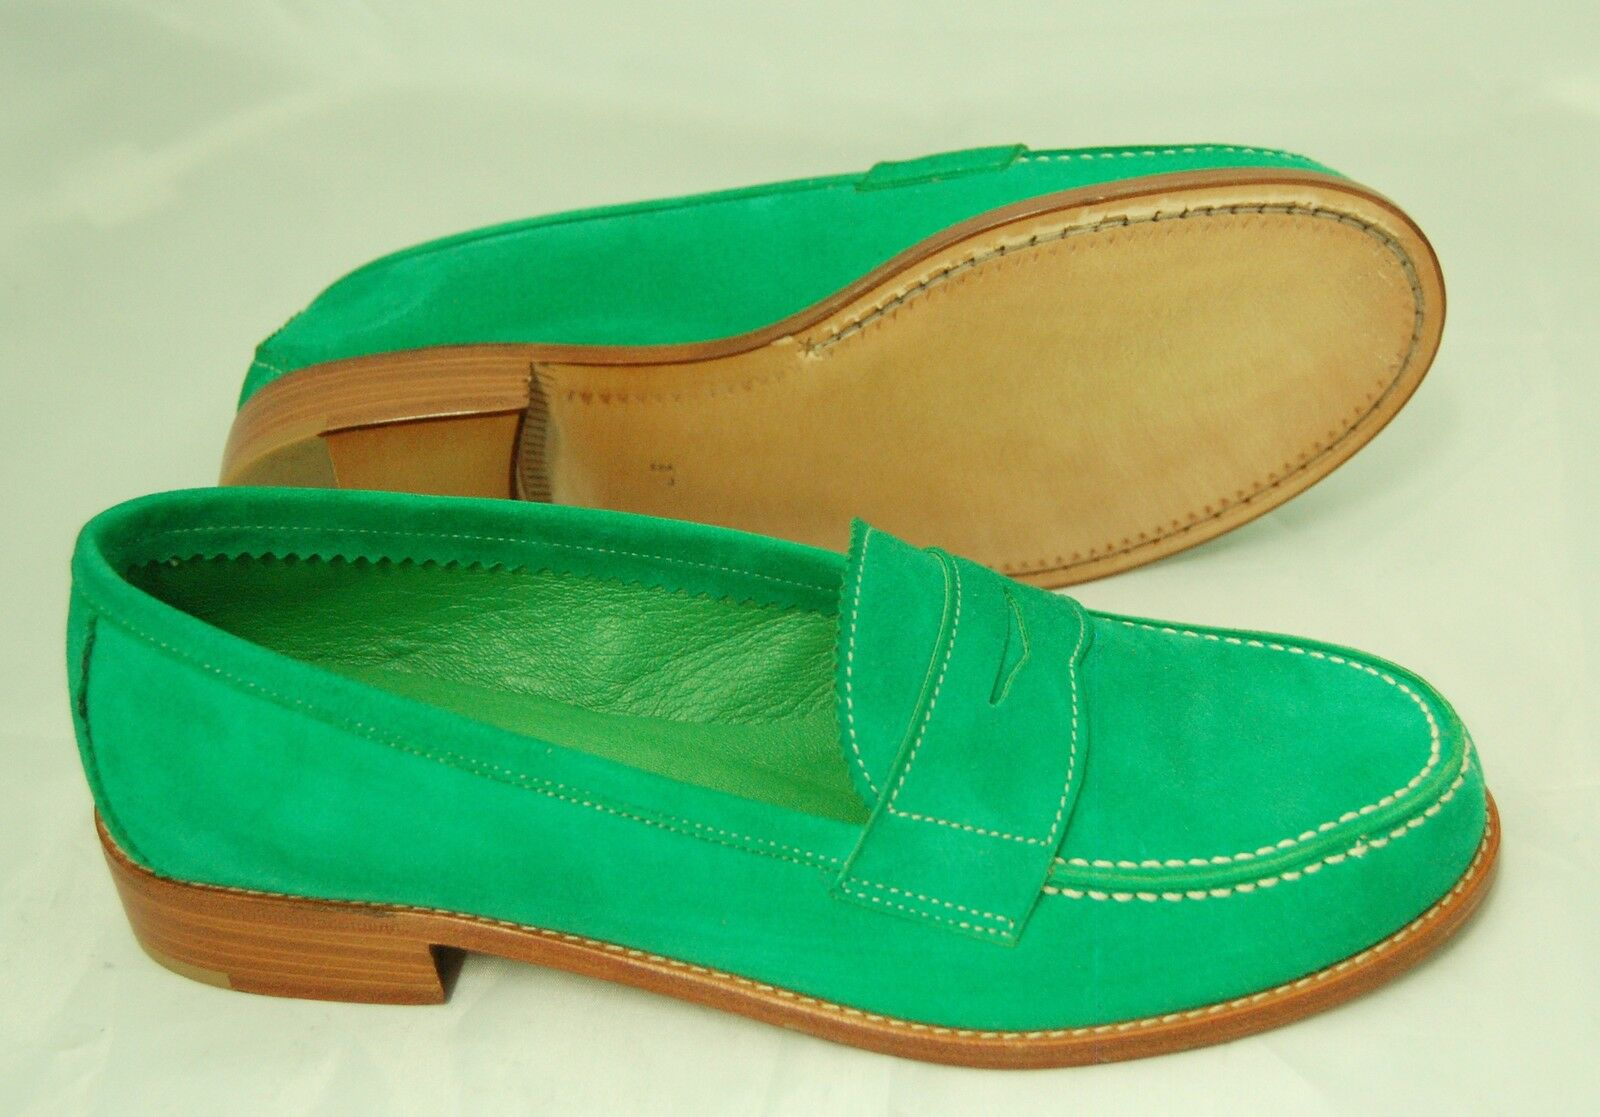 WOMAN - 36 BRILLIANT - PENNY LOAFER - BRILLIANT 36 GREEN SUEDE/LINING - LEATHER SOLE/BLAKE 3b1a31